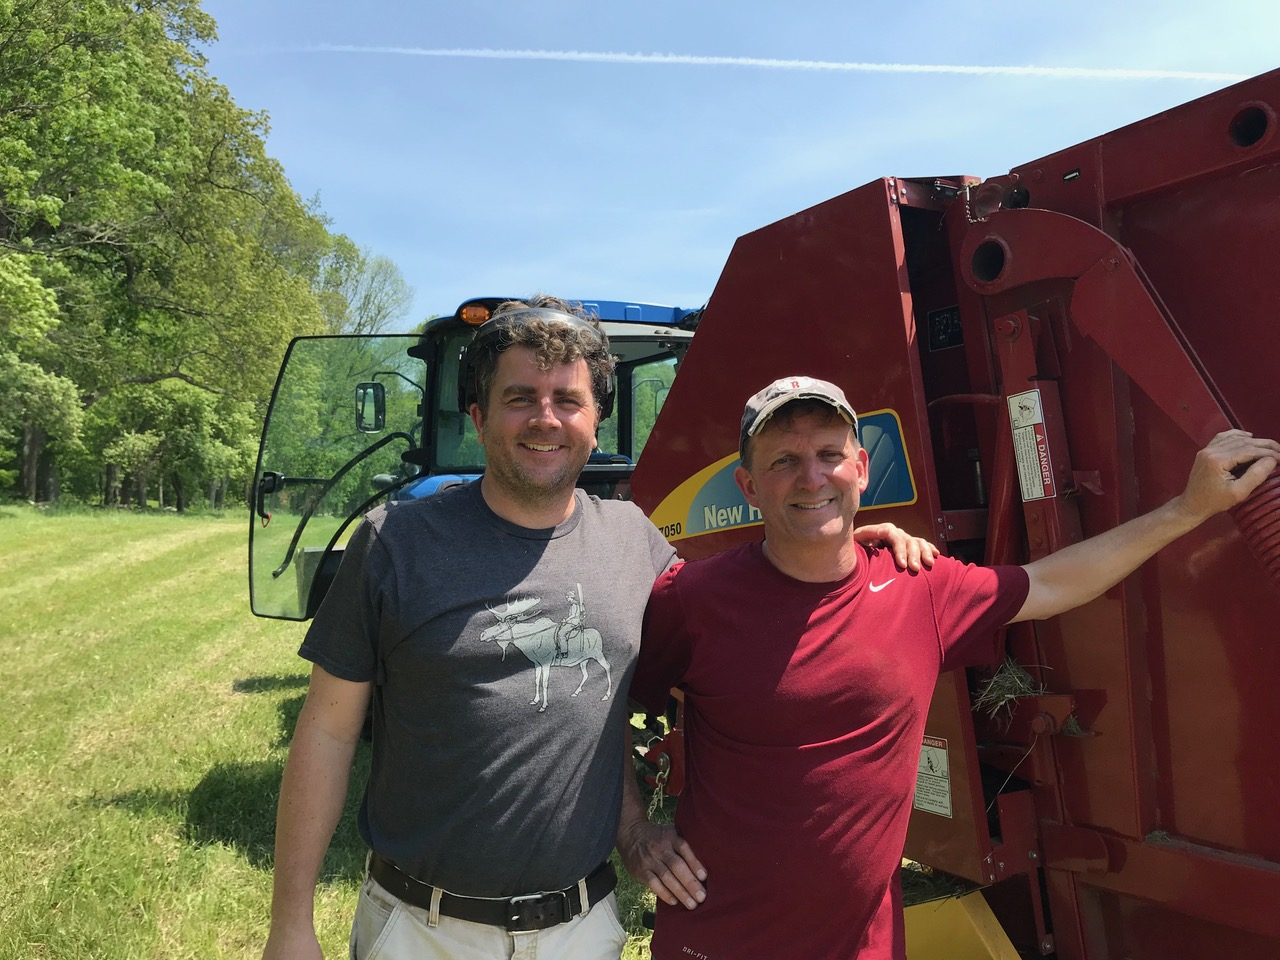 Andy Stevenson and Bob Robichaud tag teamed to get the hay cut and baled on a hot summer day.